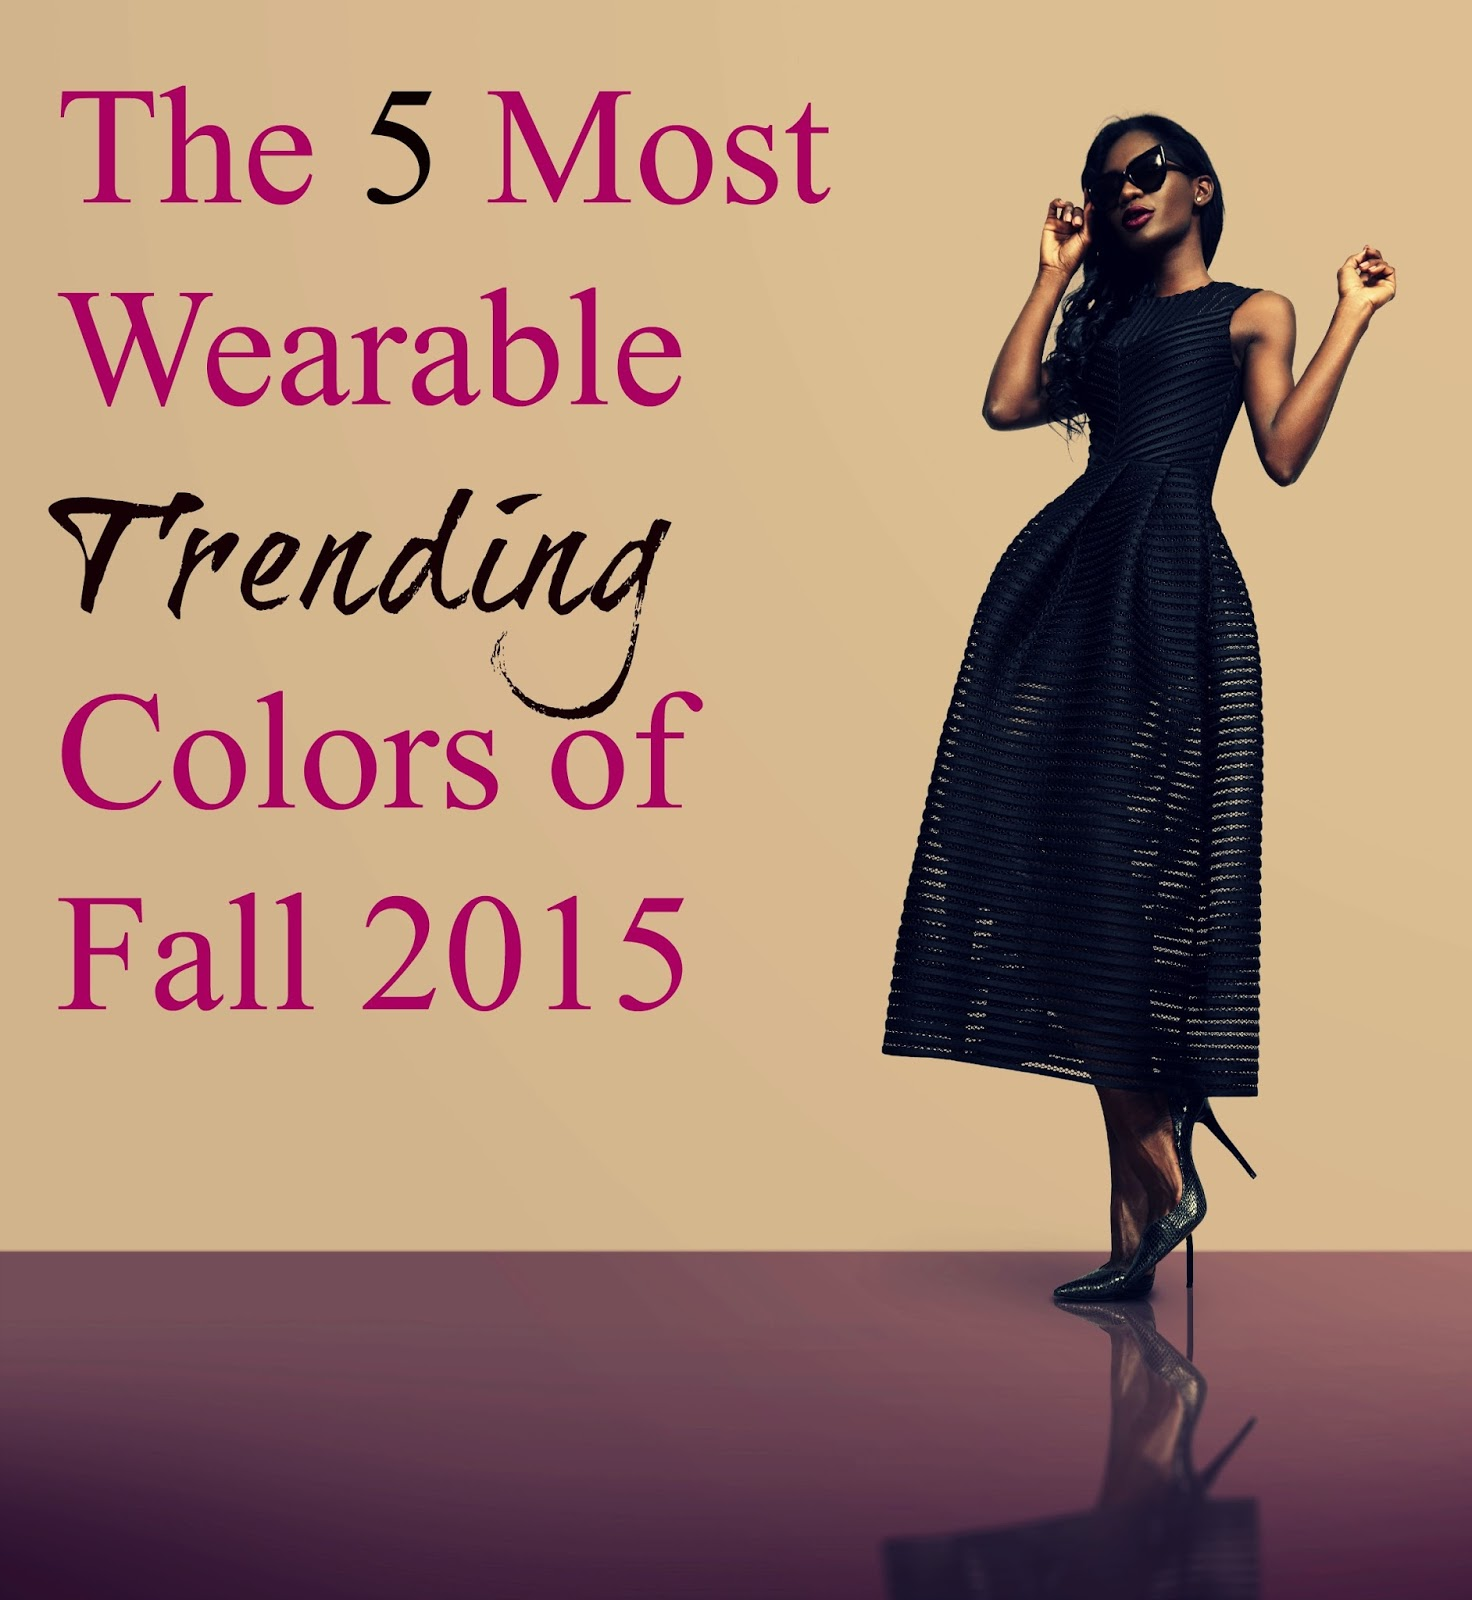 The 5 Most Wearable Trending Colors of Fall 2015